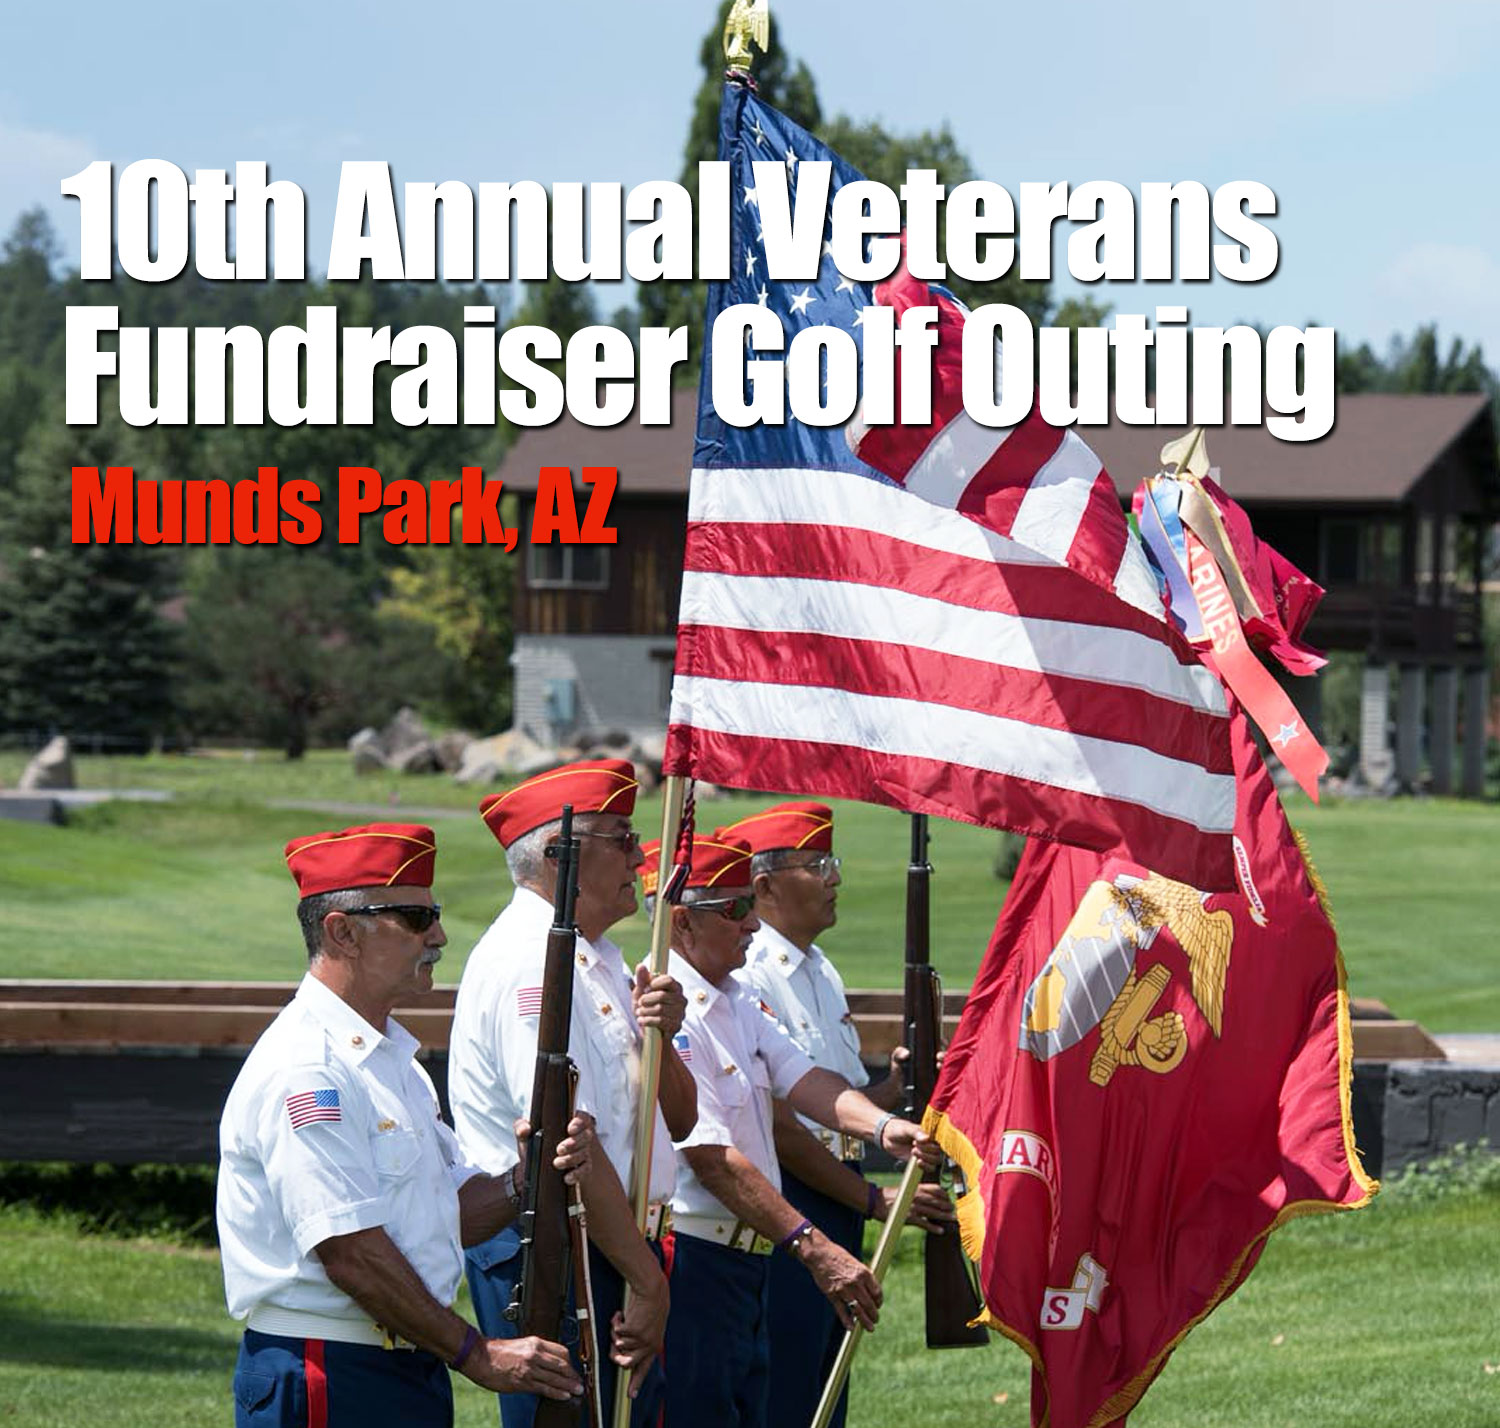 10th Annual Veterans Fundraiser Golf Outing